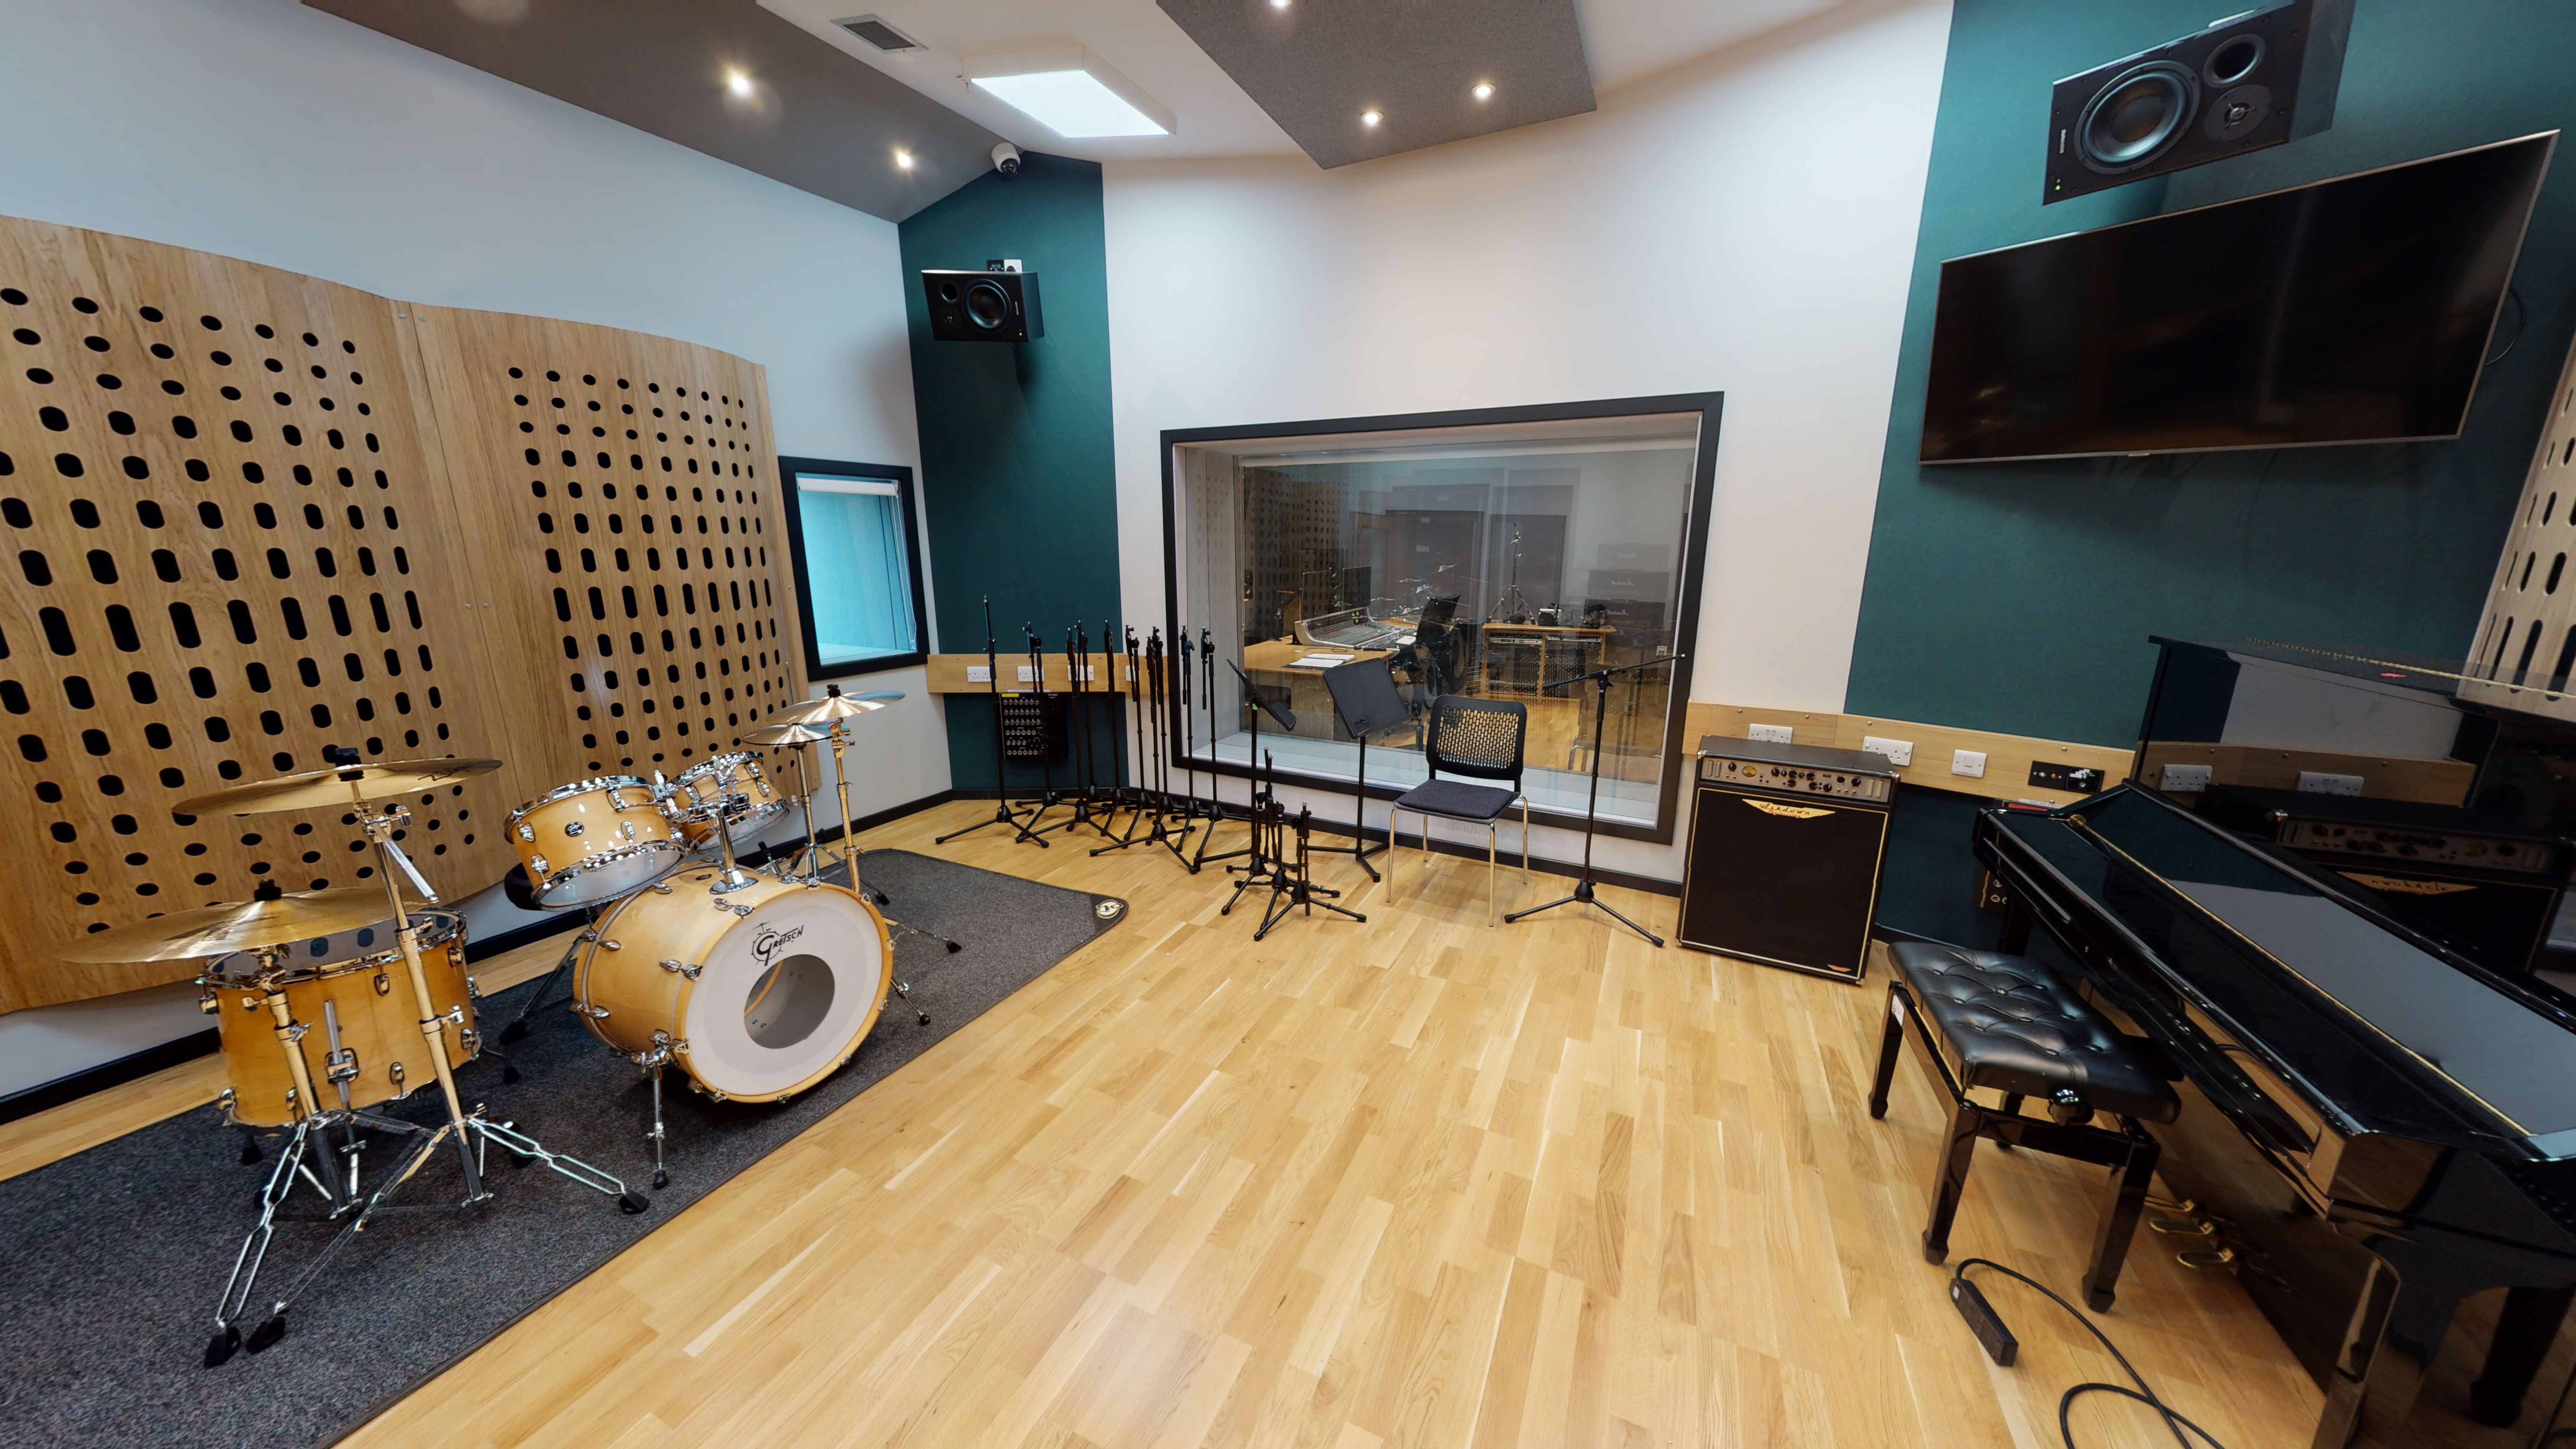 Music studio with large glass window, drums and piano